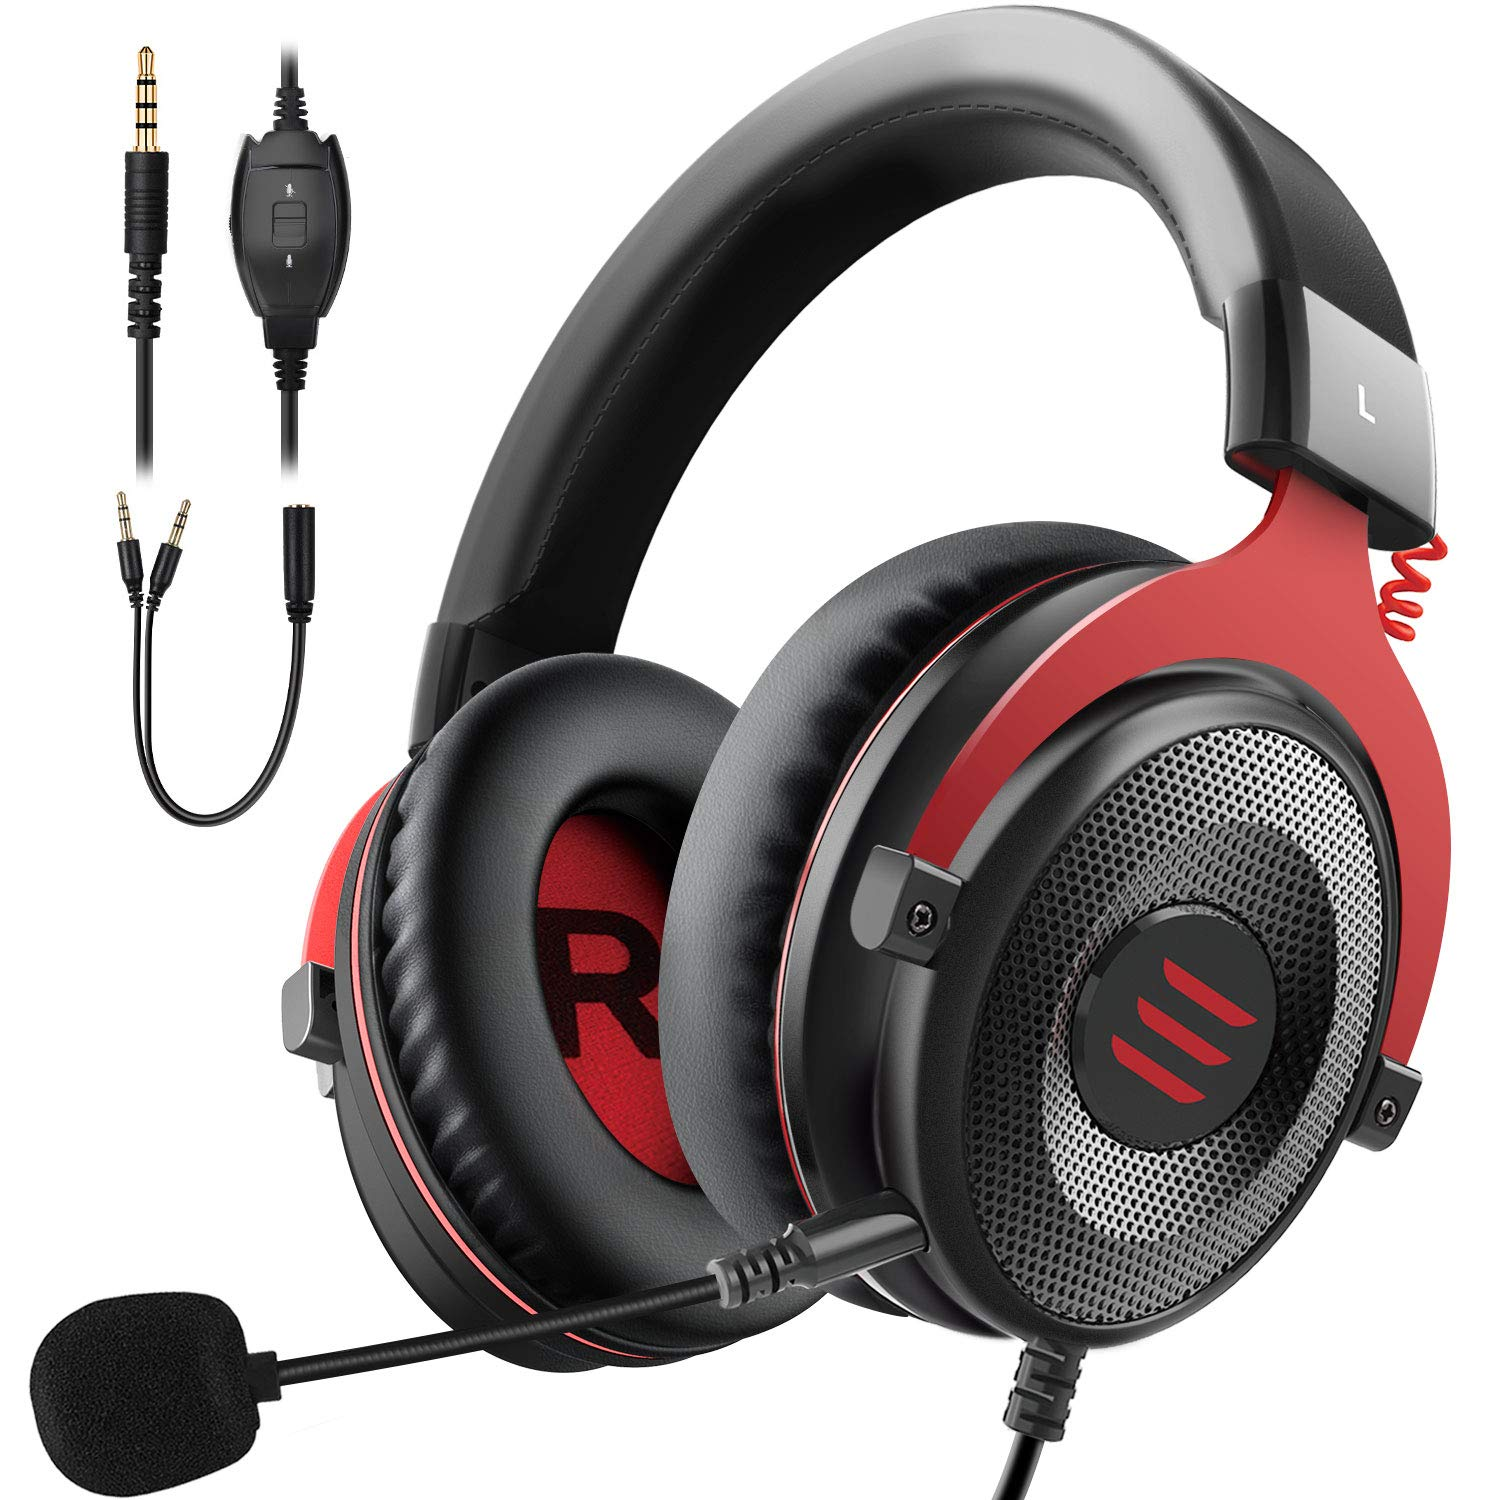 EKSA E900 Stereo Gaming Headset Xbox one Headset Wired Gaming Headphones with Noise Canceling Mic, Over Ear Headphones Compatible with PS4, Xbox One, Nintendo Switch, PC, Mac, Laptop